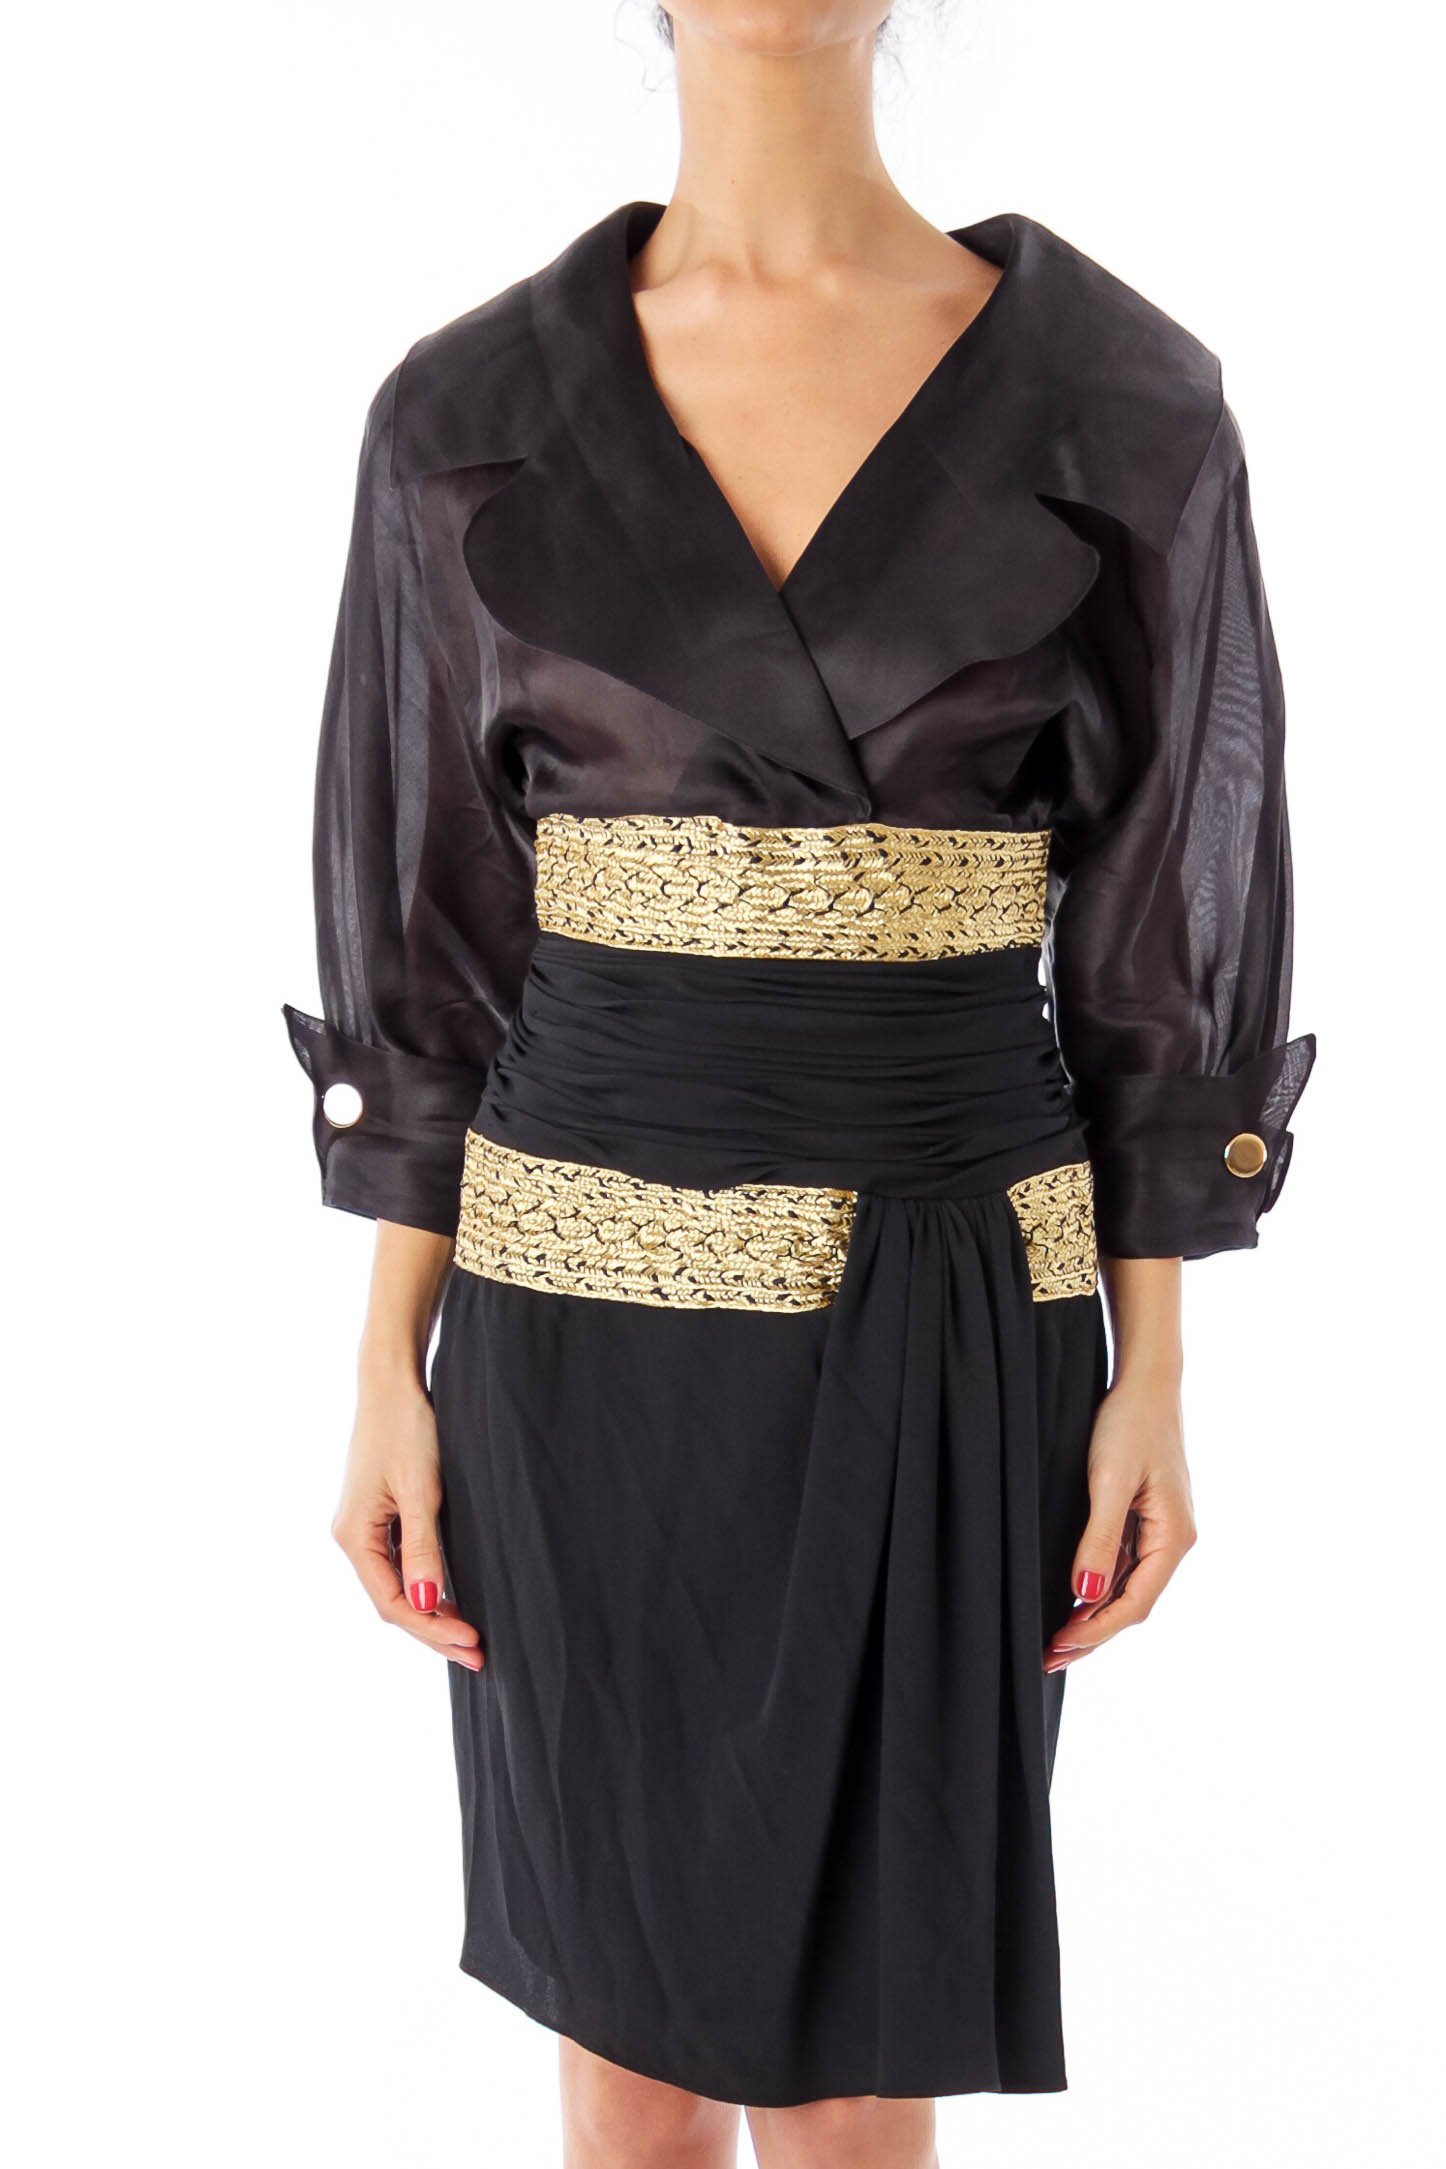 Black & Gold Puff Sleeve Evening Gown